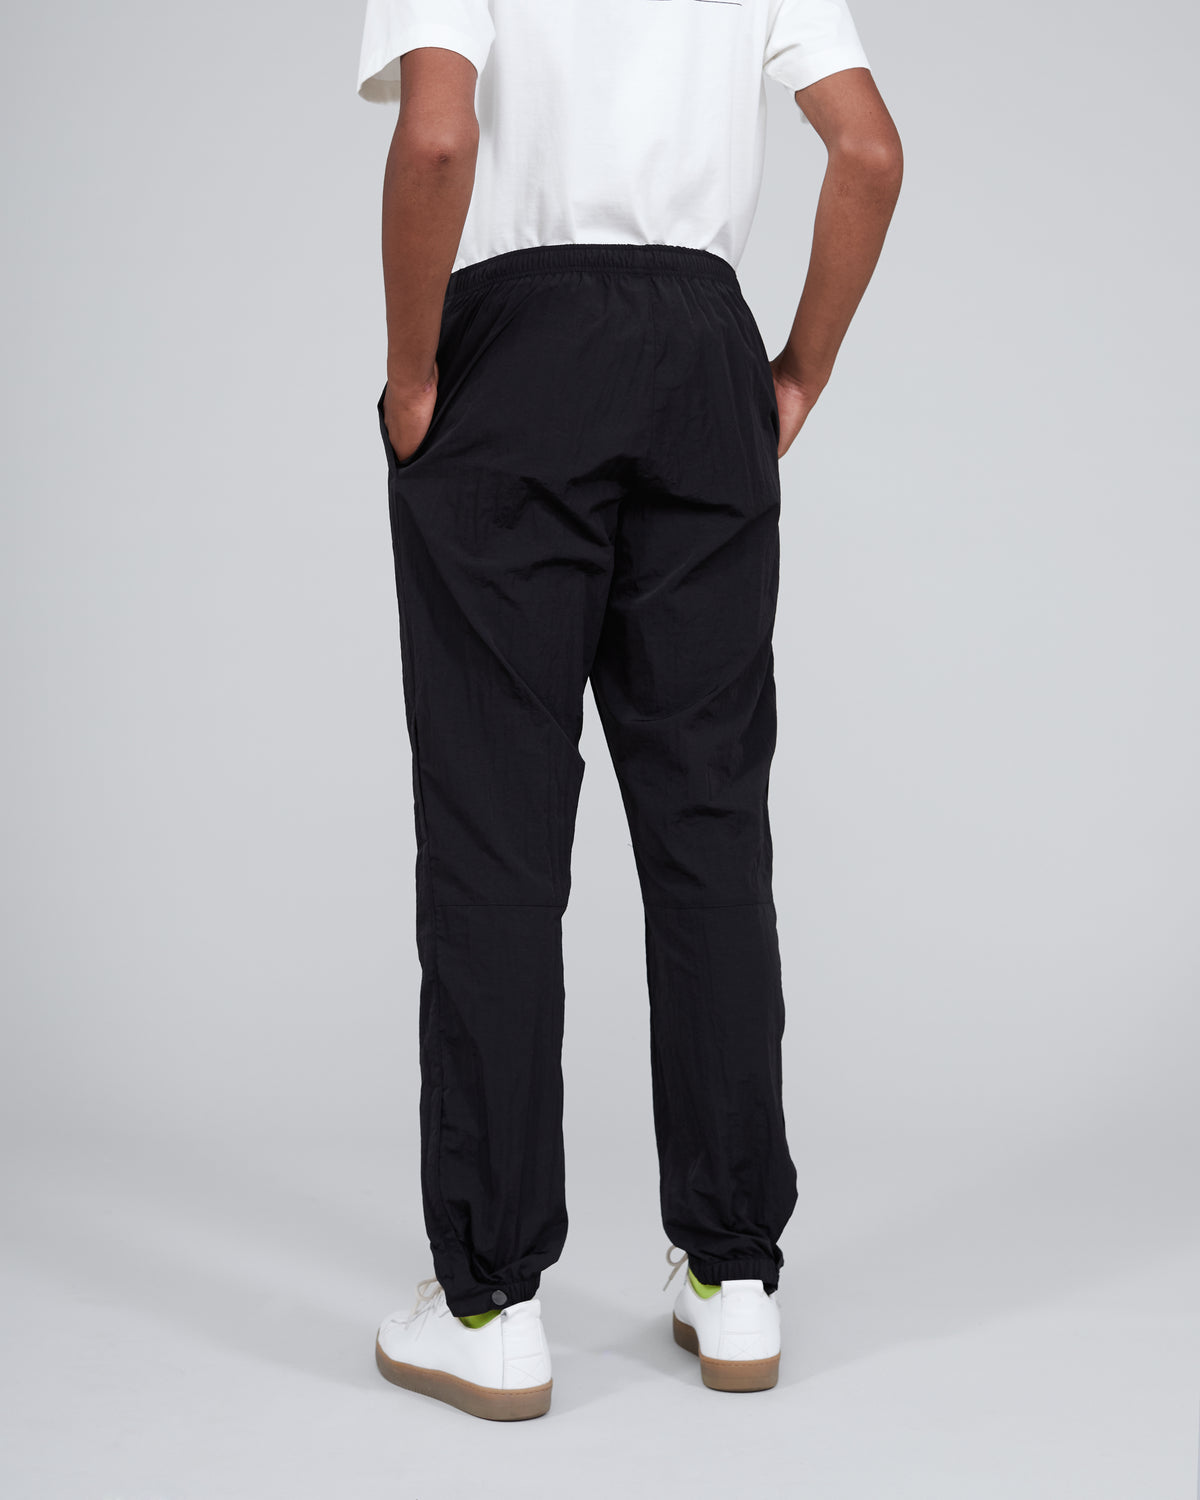 Nylon Track Pants Black, Nylon fabric, Two side pockets, Small coin pocket on side, Snap buttons on the hems for adjusting the width , Logo on left leg, Made in Portugal